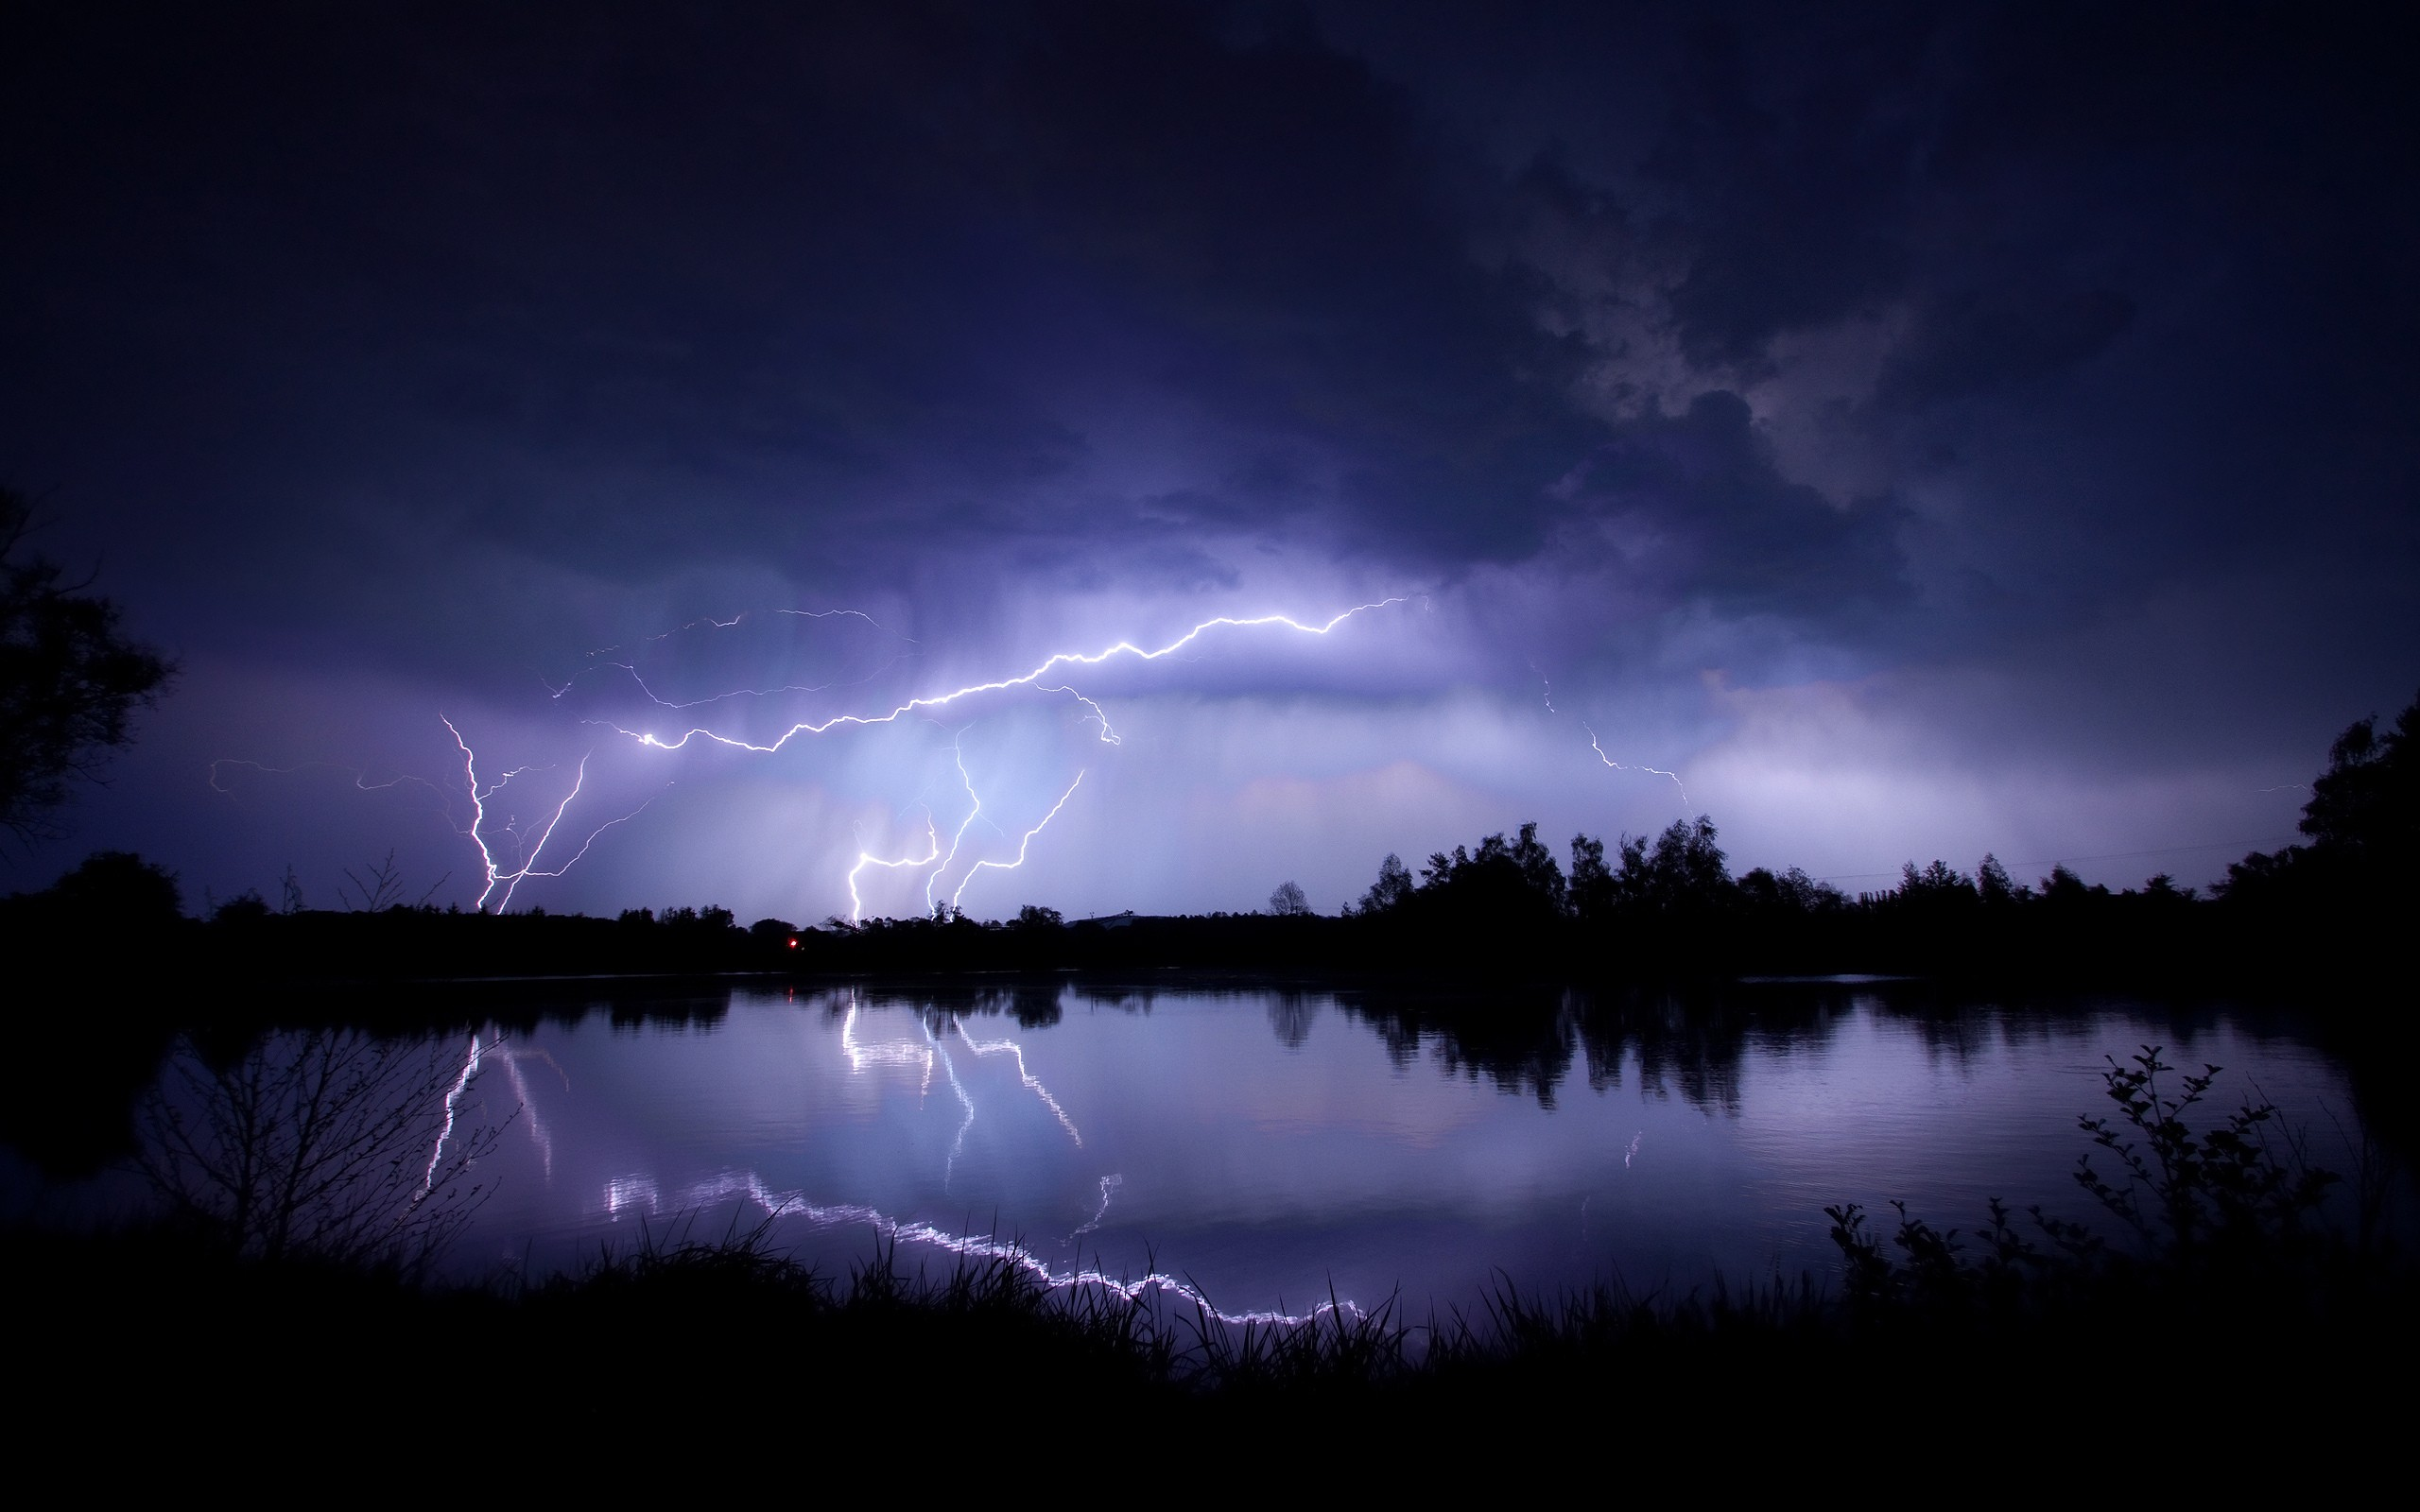 Wallpaperwiki Lightning Storm Wallpaper For Desktop PIC WPD001932